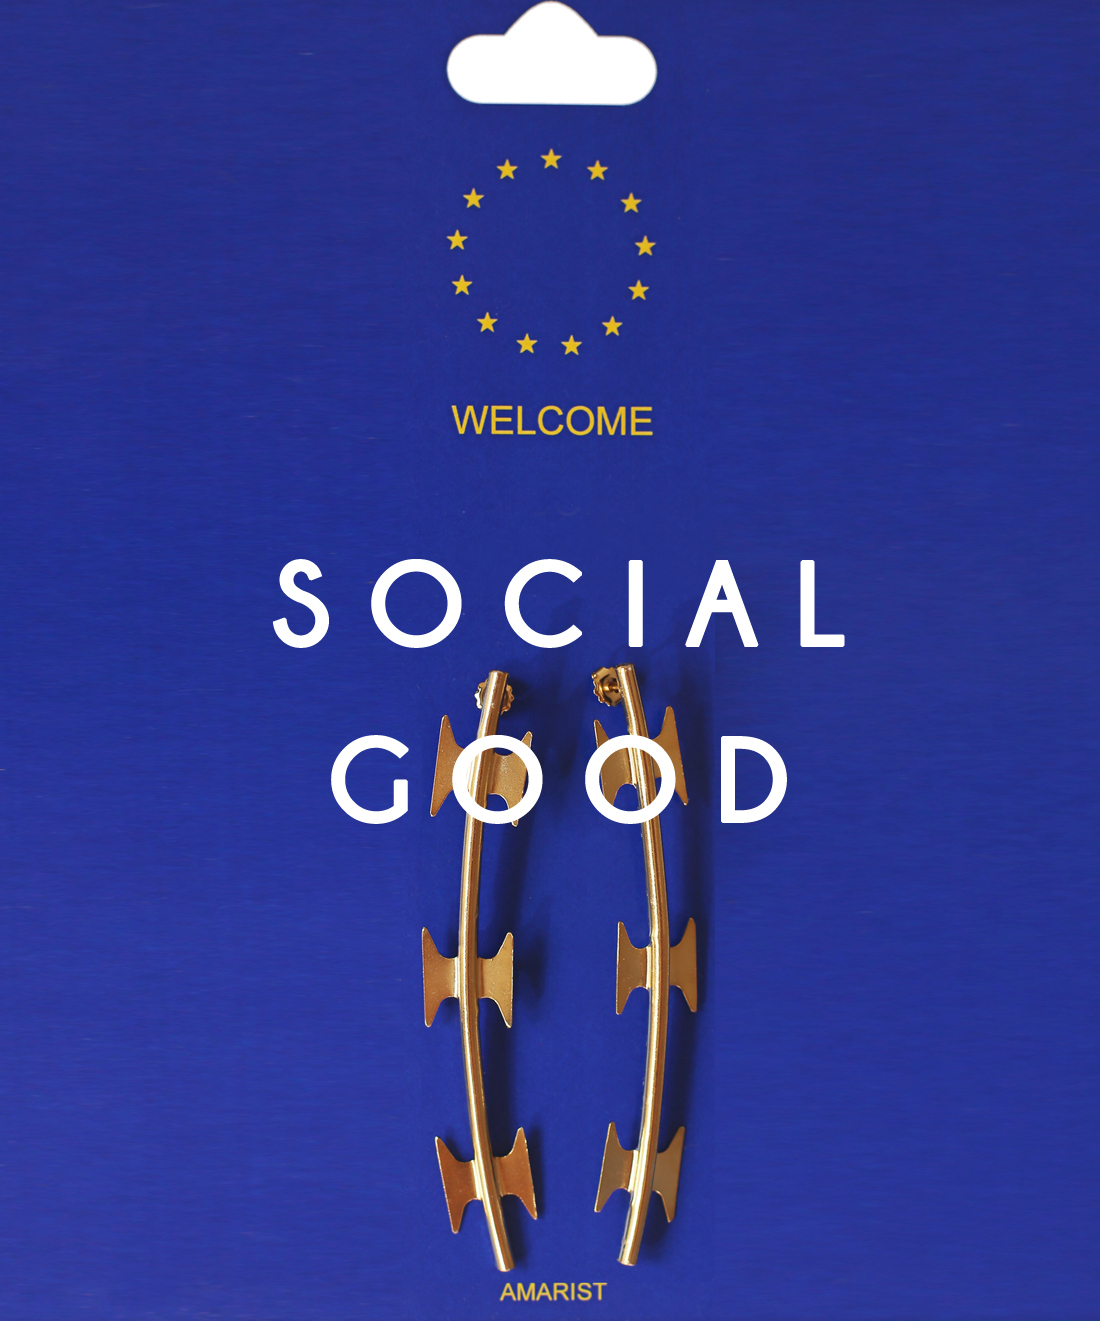 Social good design by Amarist studio